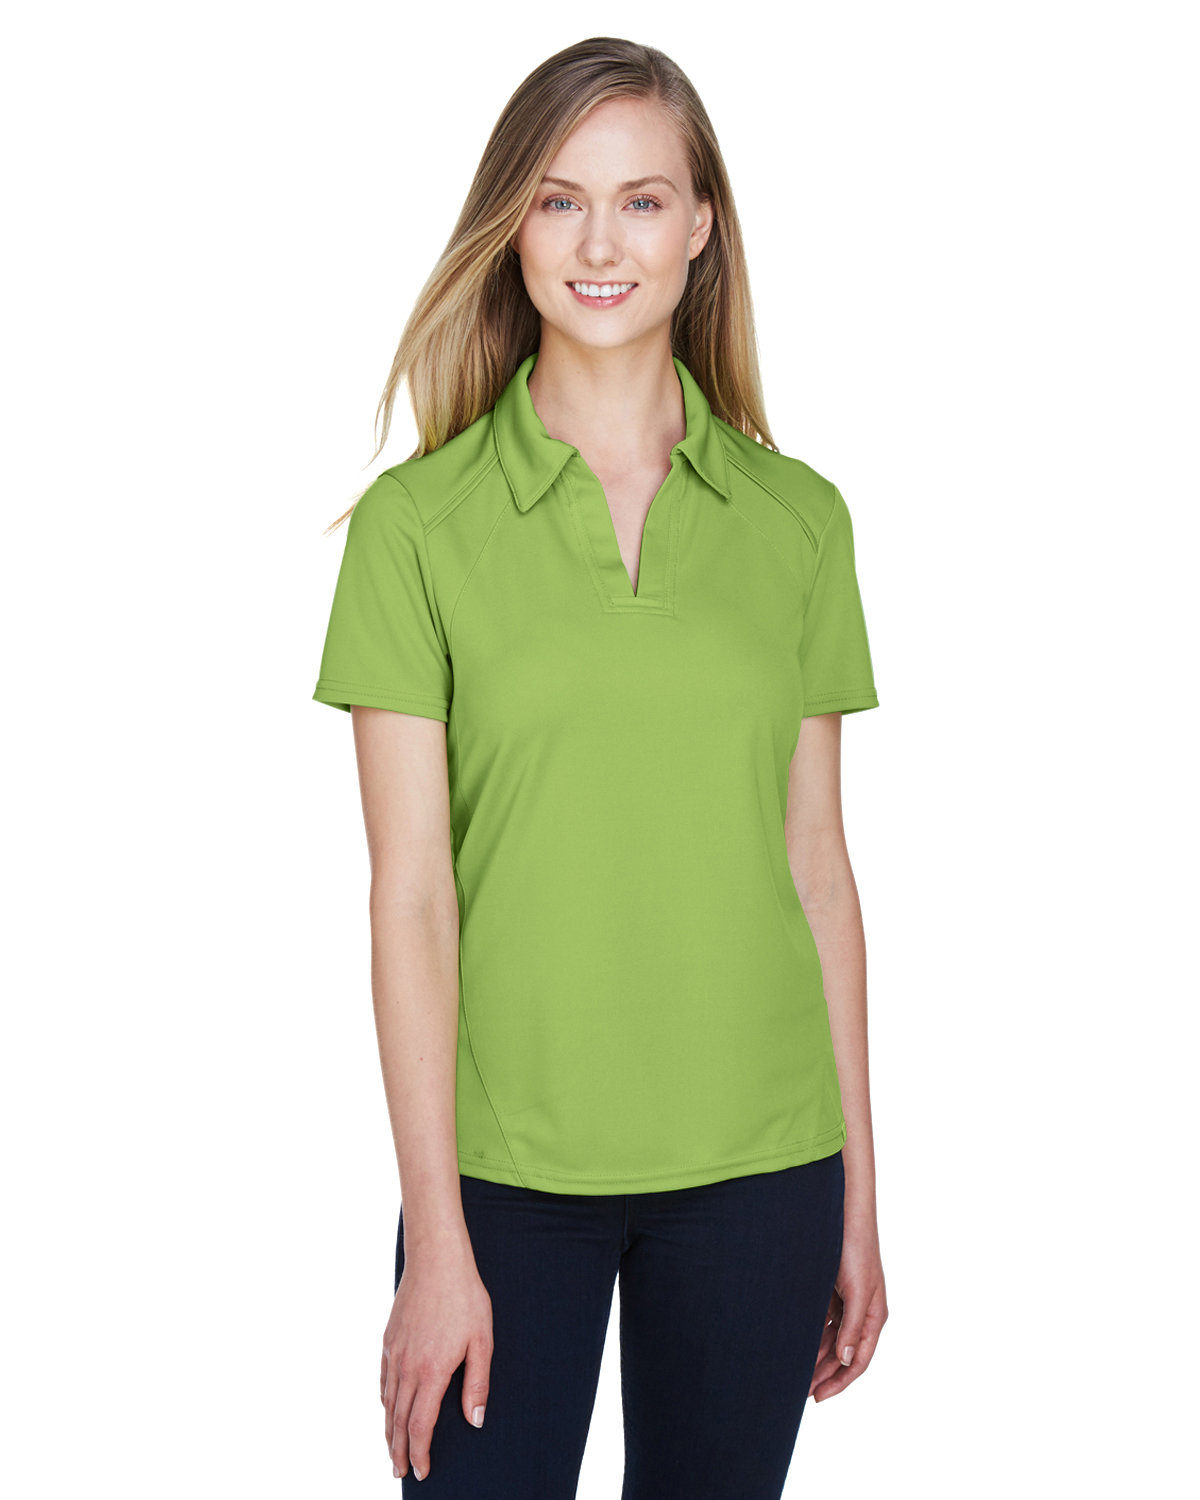 North End Ladies' Recycled Polyester Performance Piqué Polo CACTUS GREEN